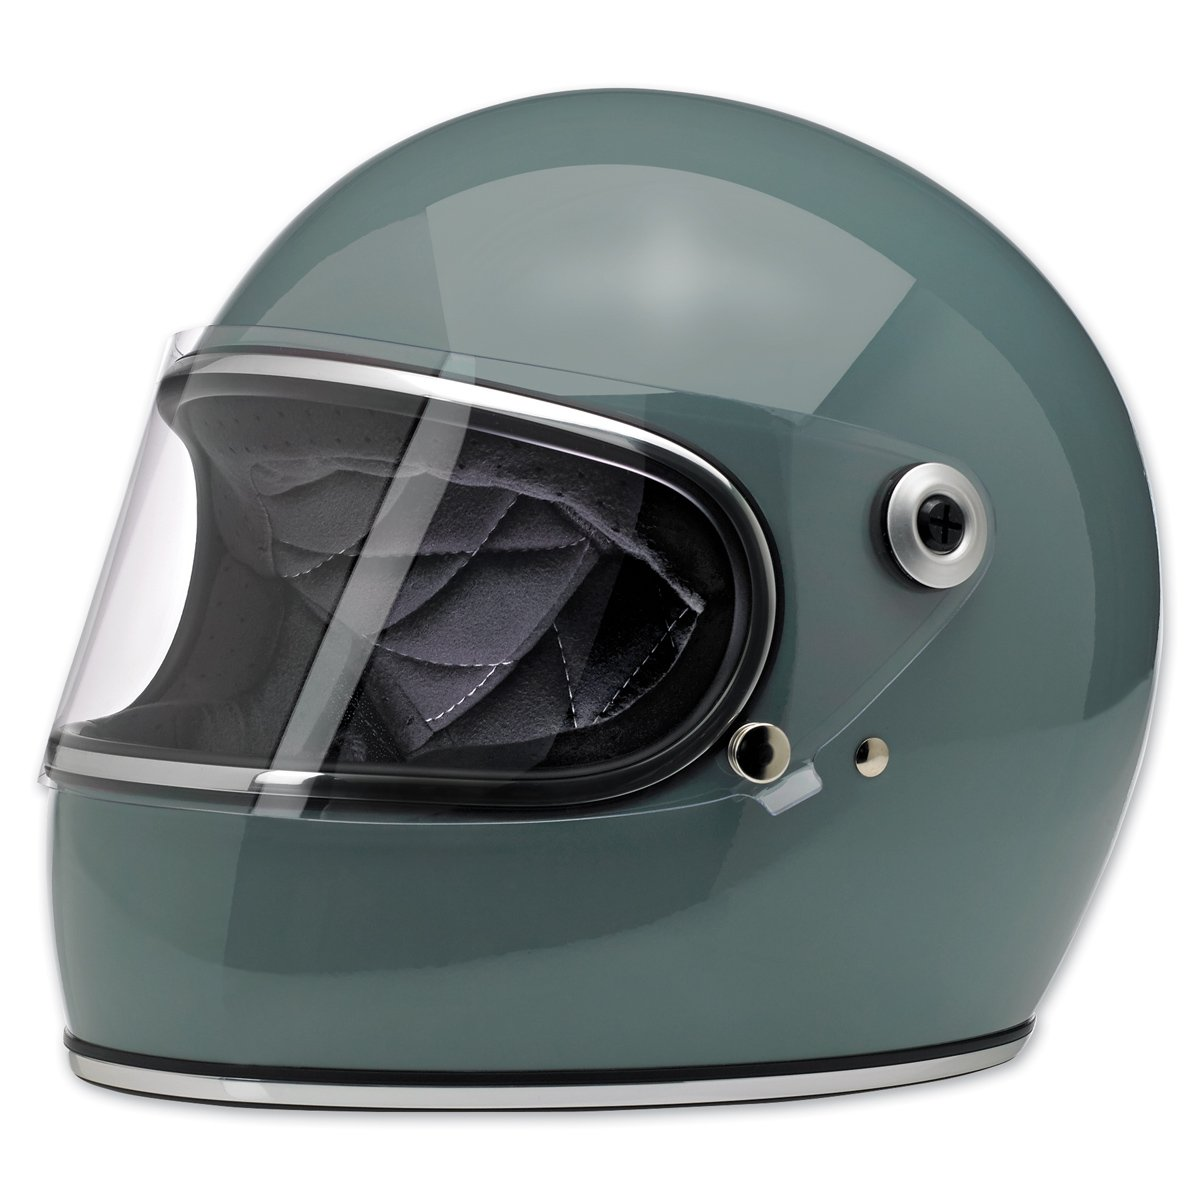 Biltwell Inc. Gringo S Gloss Agave Full Face Helmet, X-Small